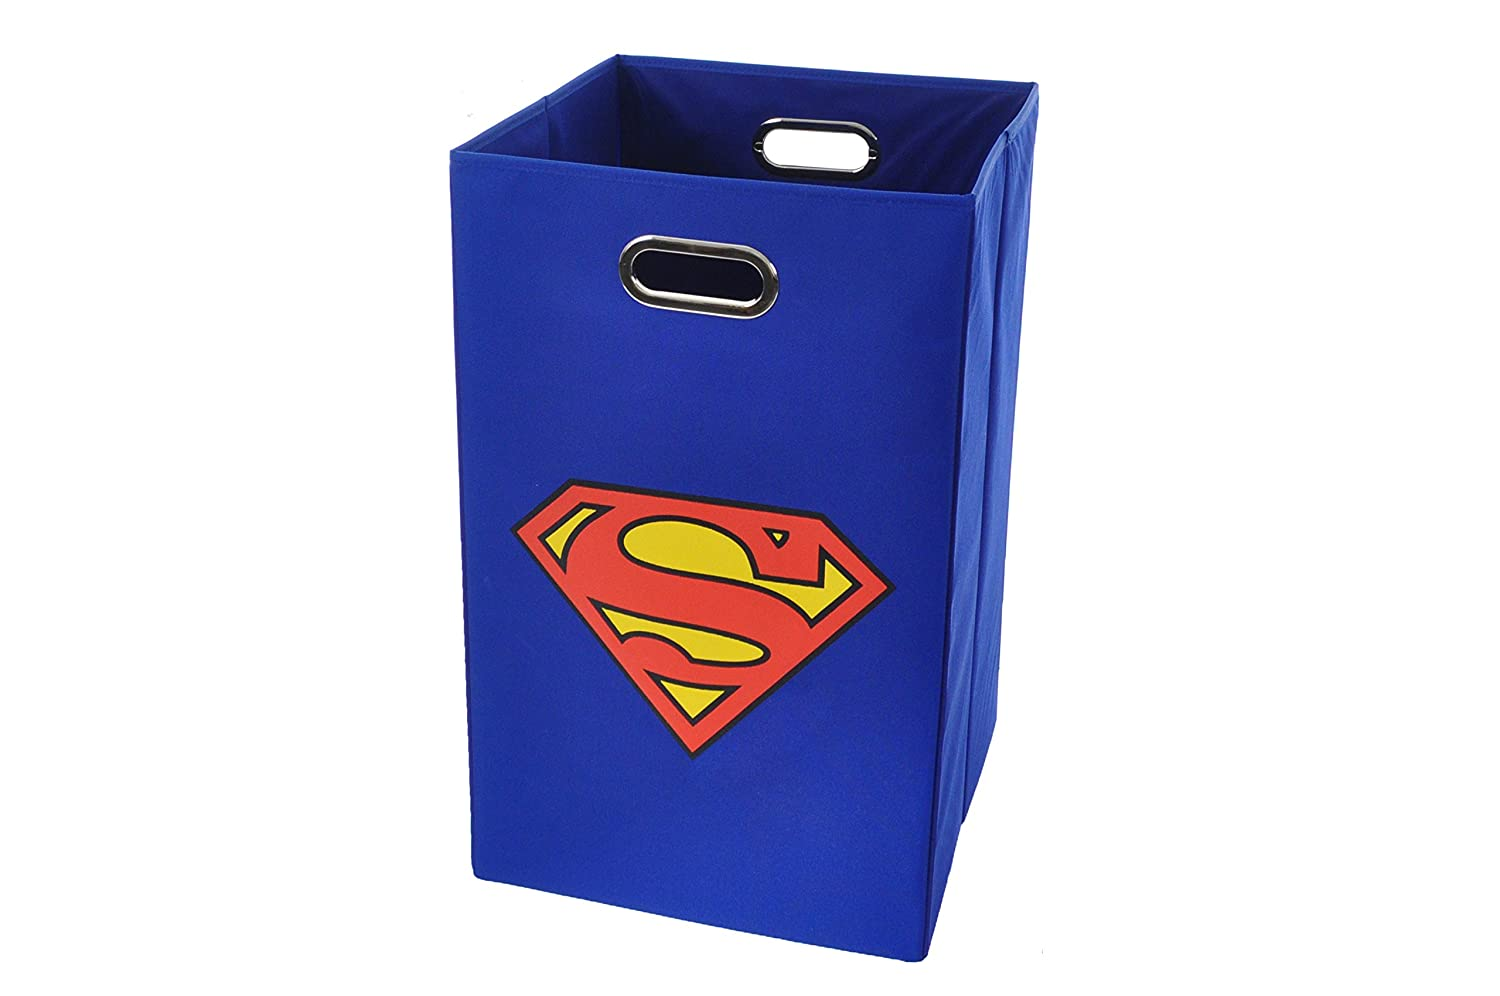 Superman logo laundry basket folding hamper bathroom room kids boys clothes new ebay - Superhero laundry hamper ...